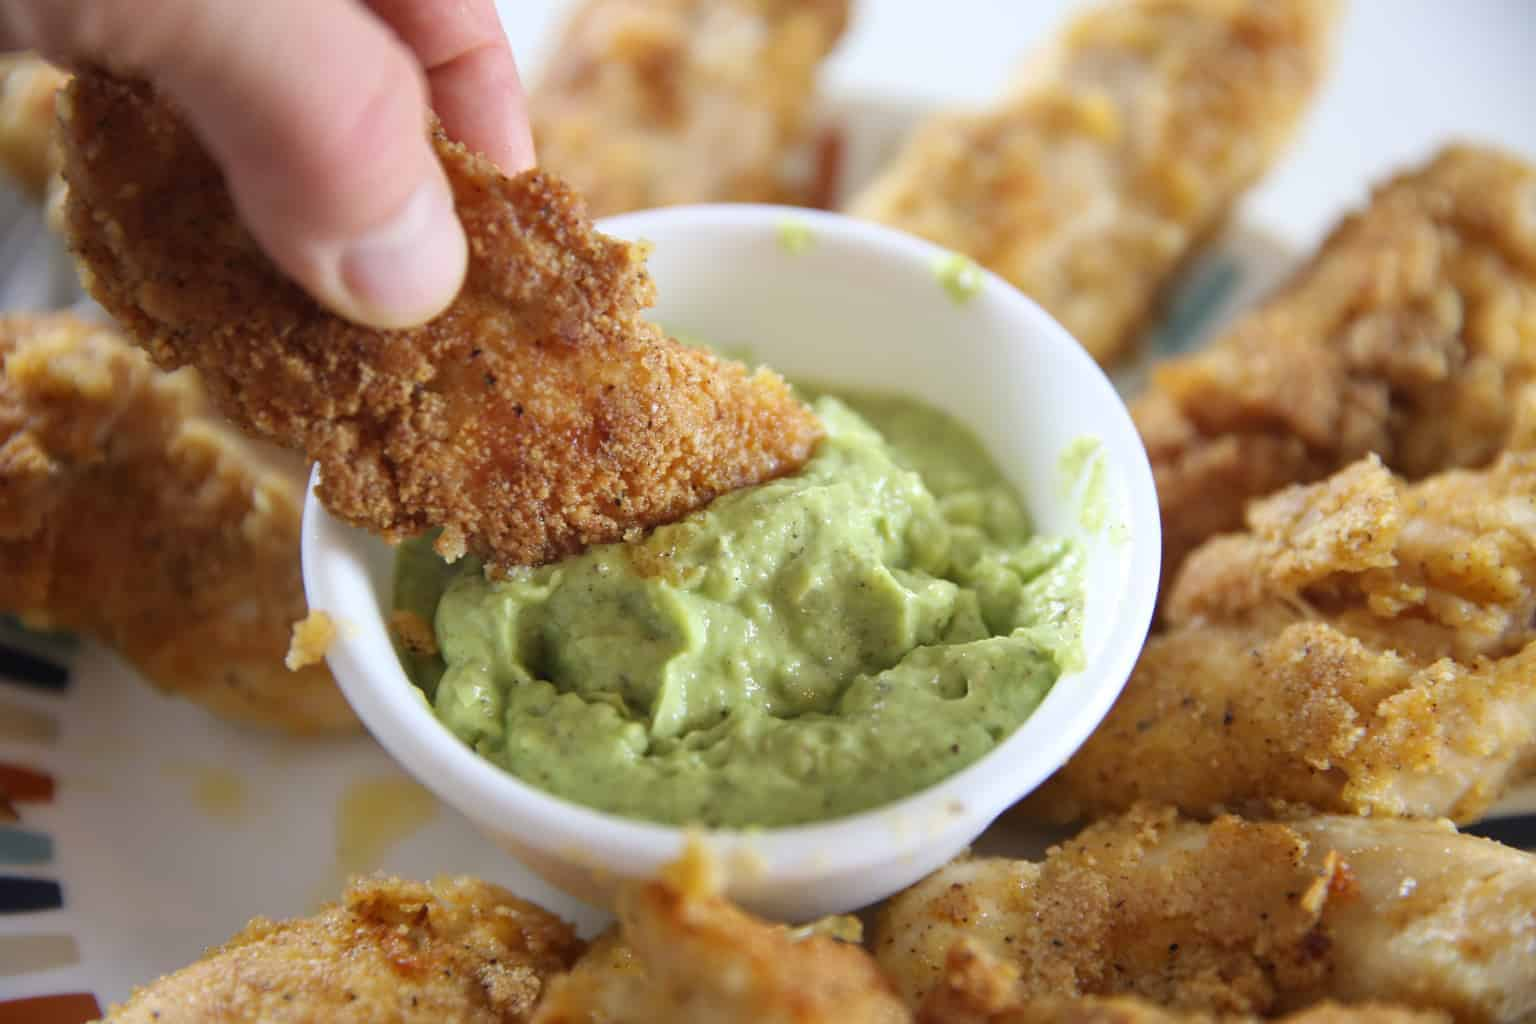 Whole 30 dipping sauce for chicken, creamy avocado dipping sauce.